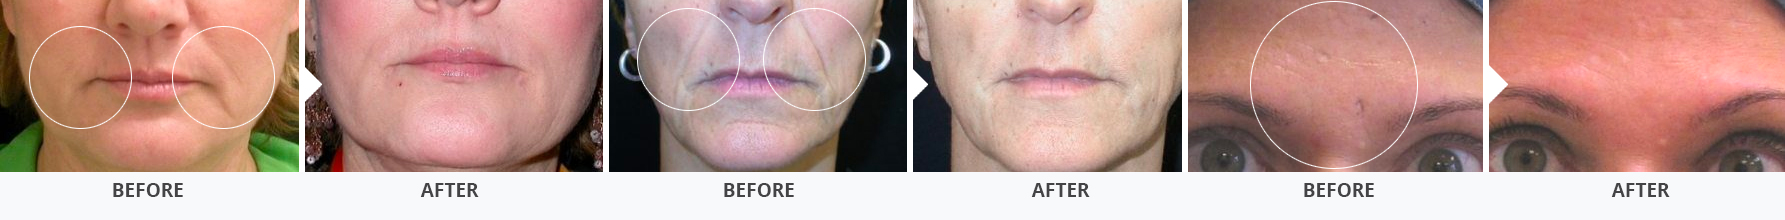 Before and after photos for Juvederm cosmetic injectables